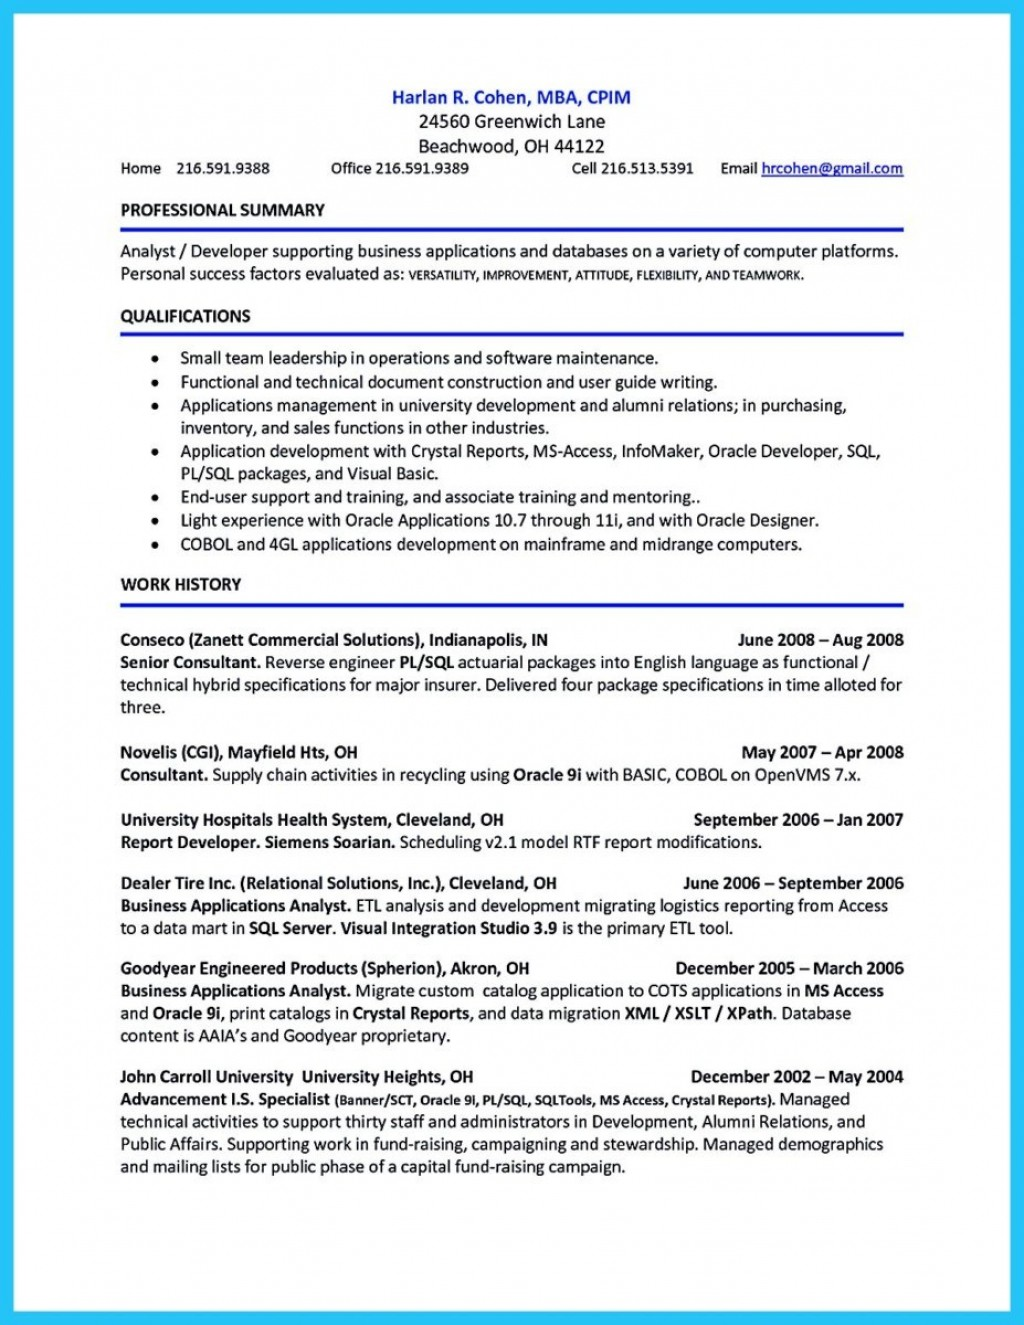 002 Mba Essay Teamwork Writing Consultant Outstanding Best Consultants Application Large